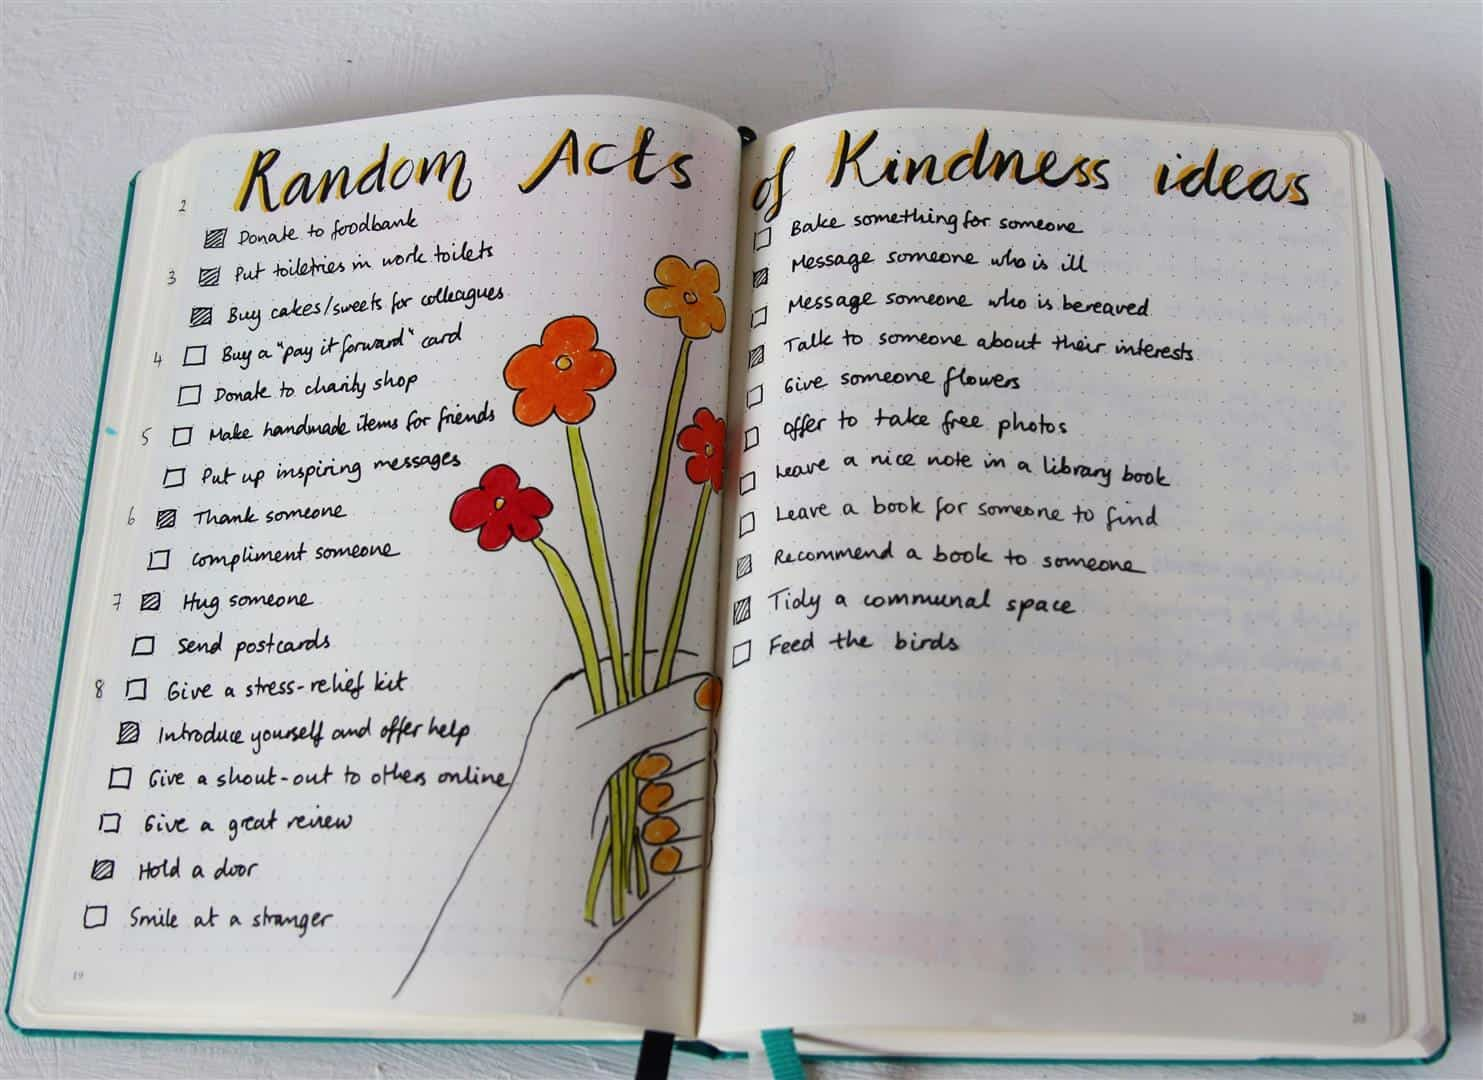 Plan some Random Acts of Kindness